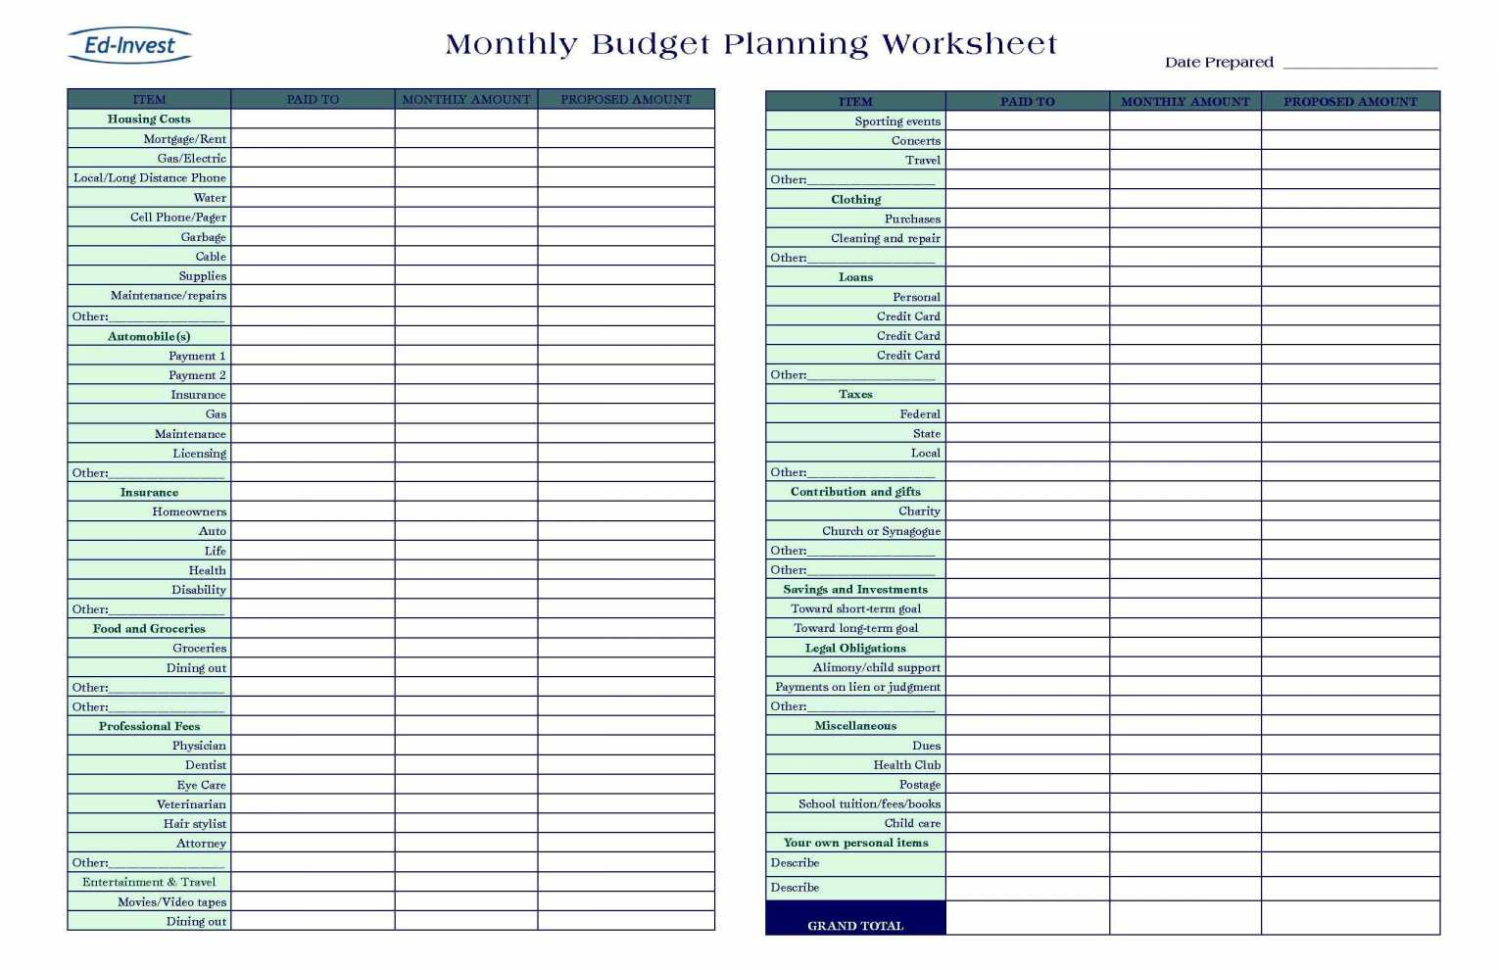 Business Spreadsheet Free With Small Business Expenses Spreadsheet With Expense Spreadsheet For Small Business